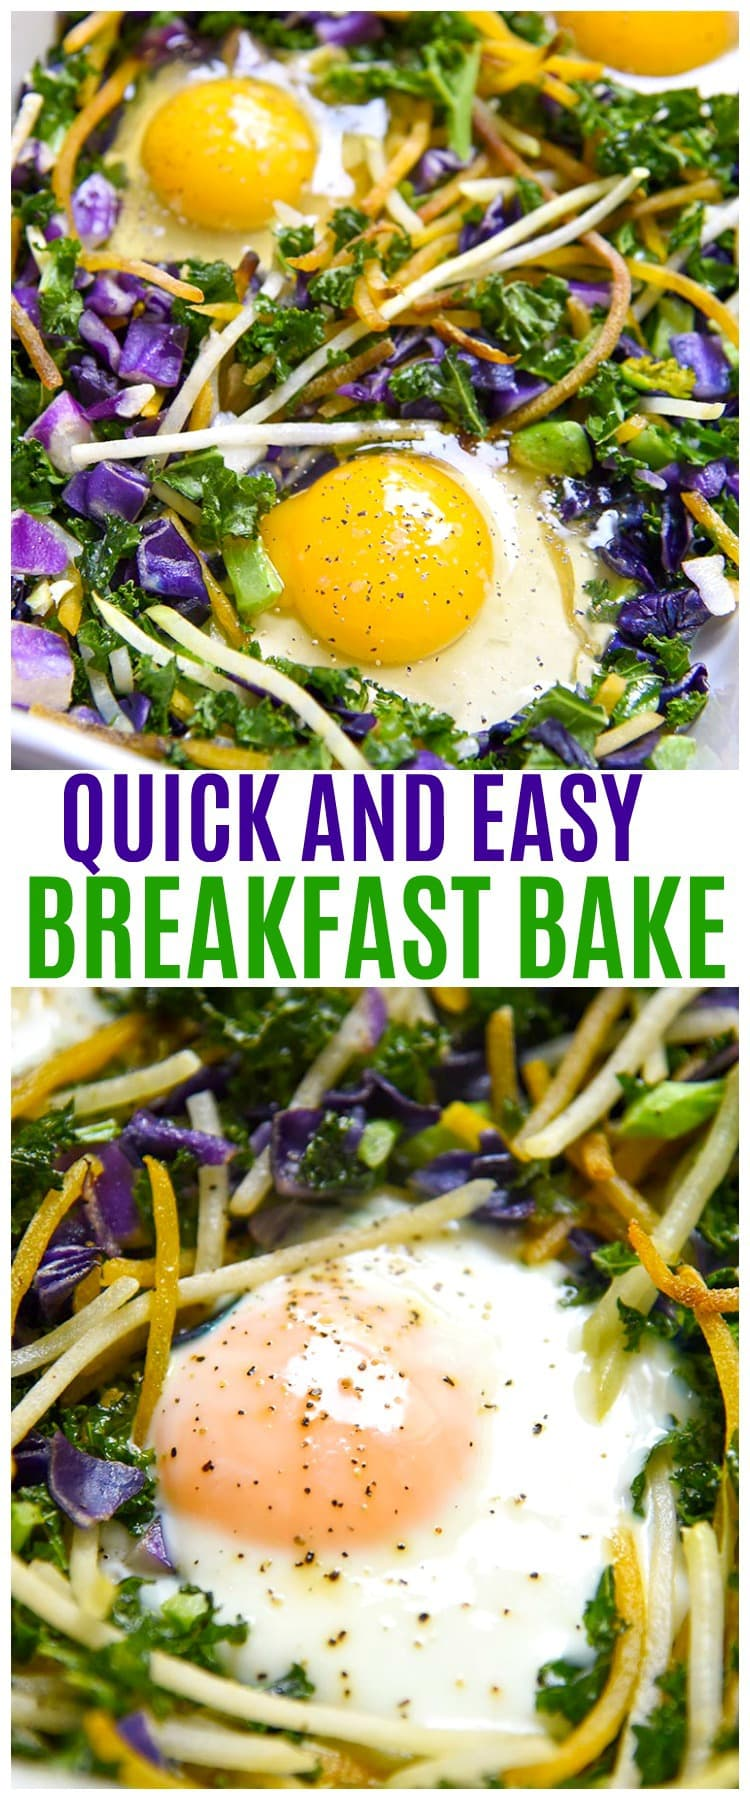 This healthy breakfast bake is a quick and easy sheet pan recipe! A nutritious meal filled with healthy vegetables like Kale, Kohlrabi, Beets, Cabbage and farm fresh Eggs.